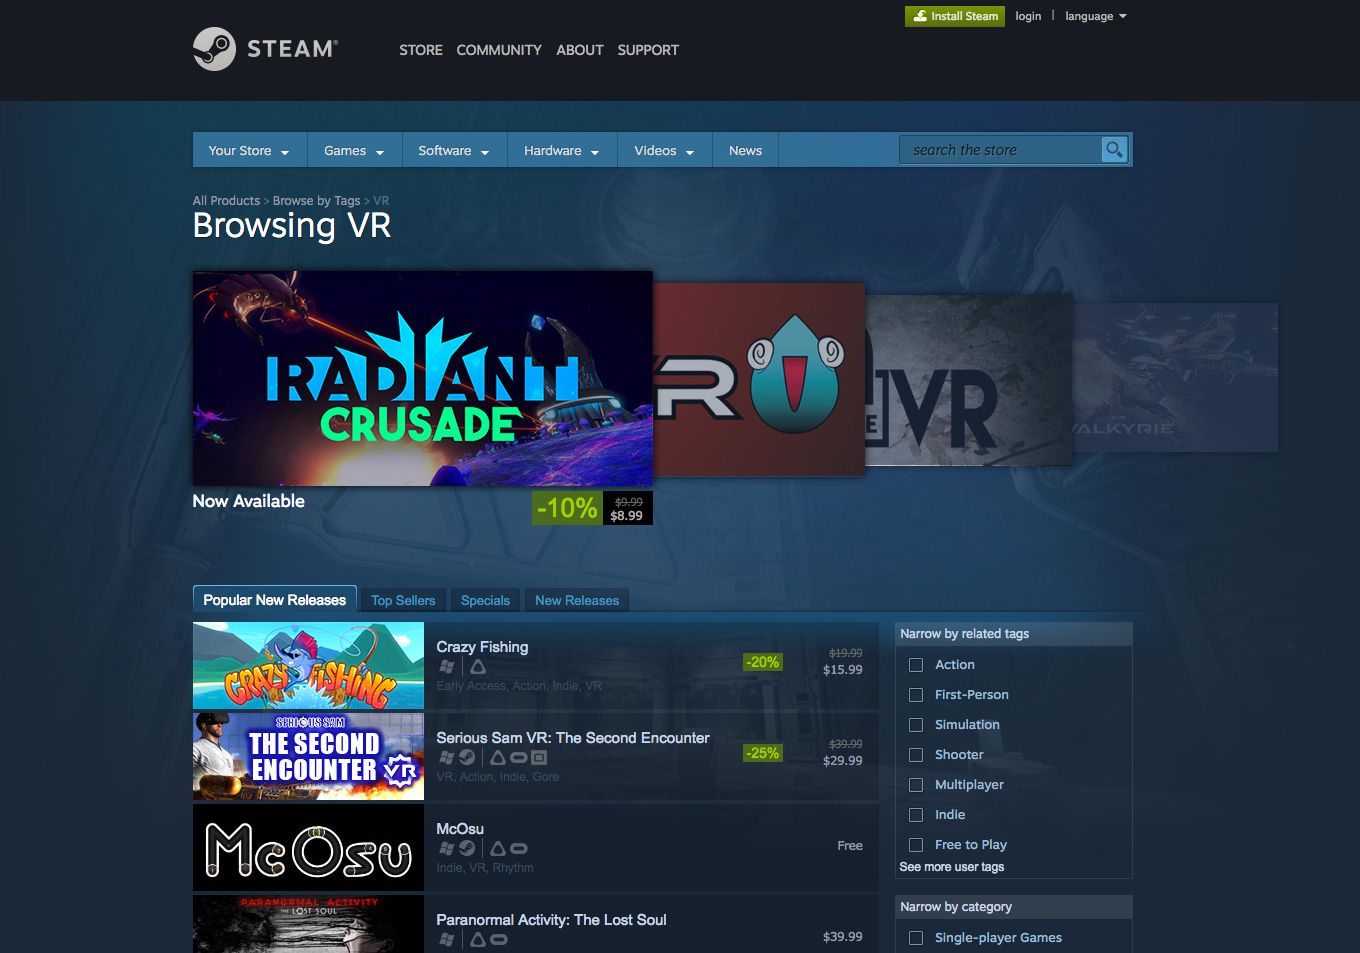 Valve's STEAM software, vr category